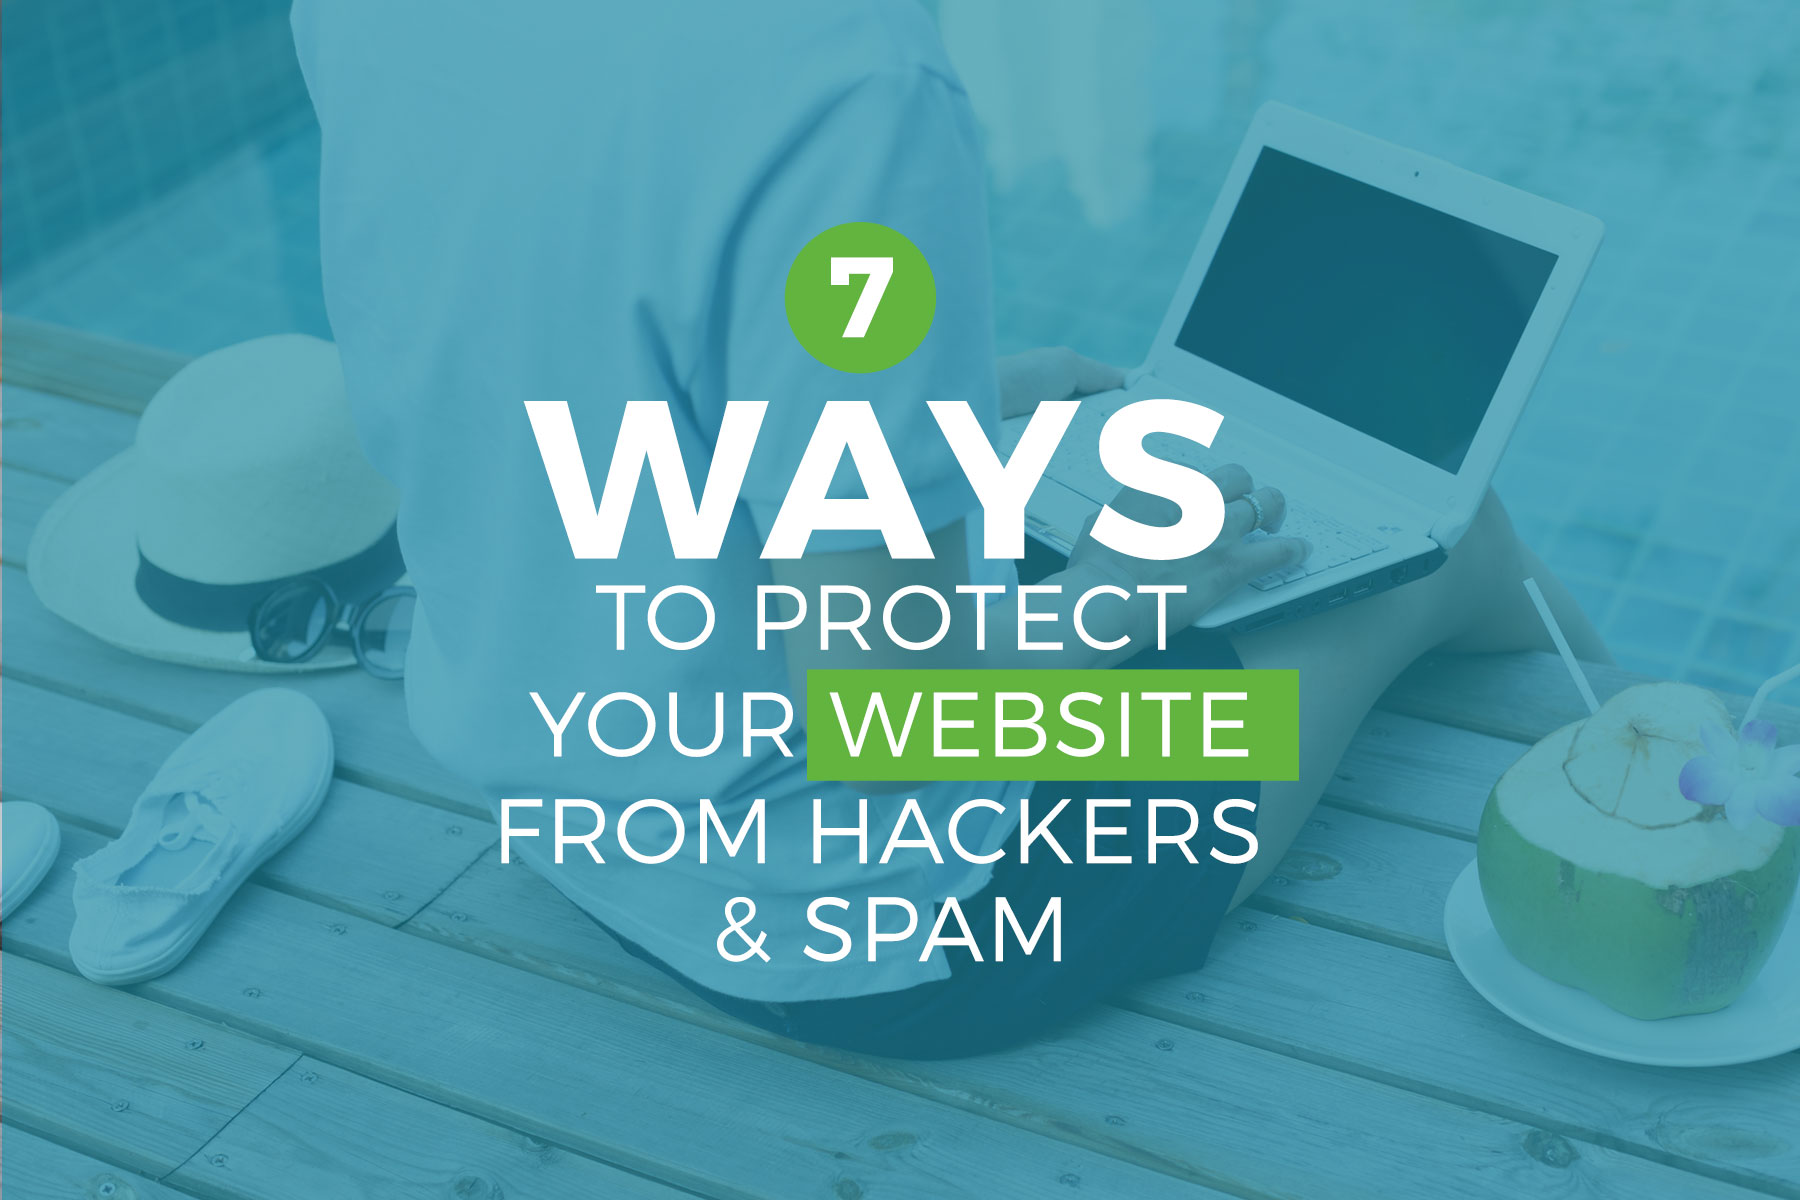 7 WordPress Security Tips: How to protect your website from hackers and spam